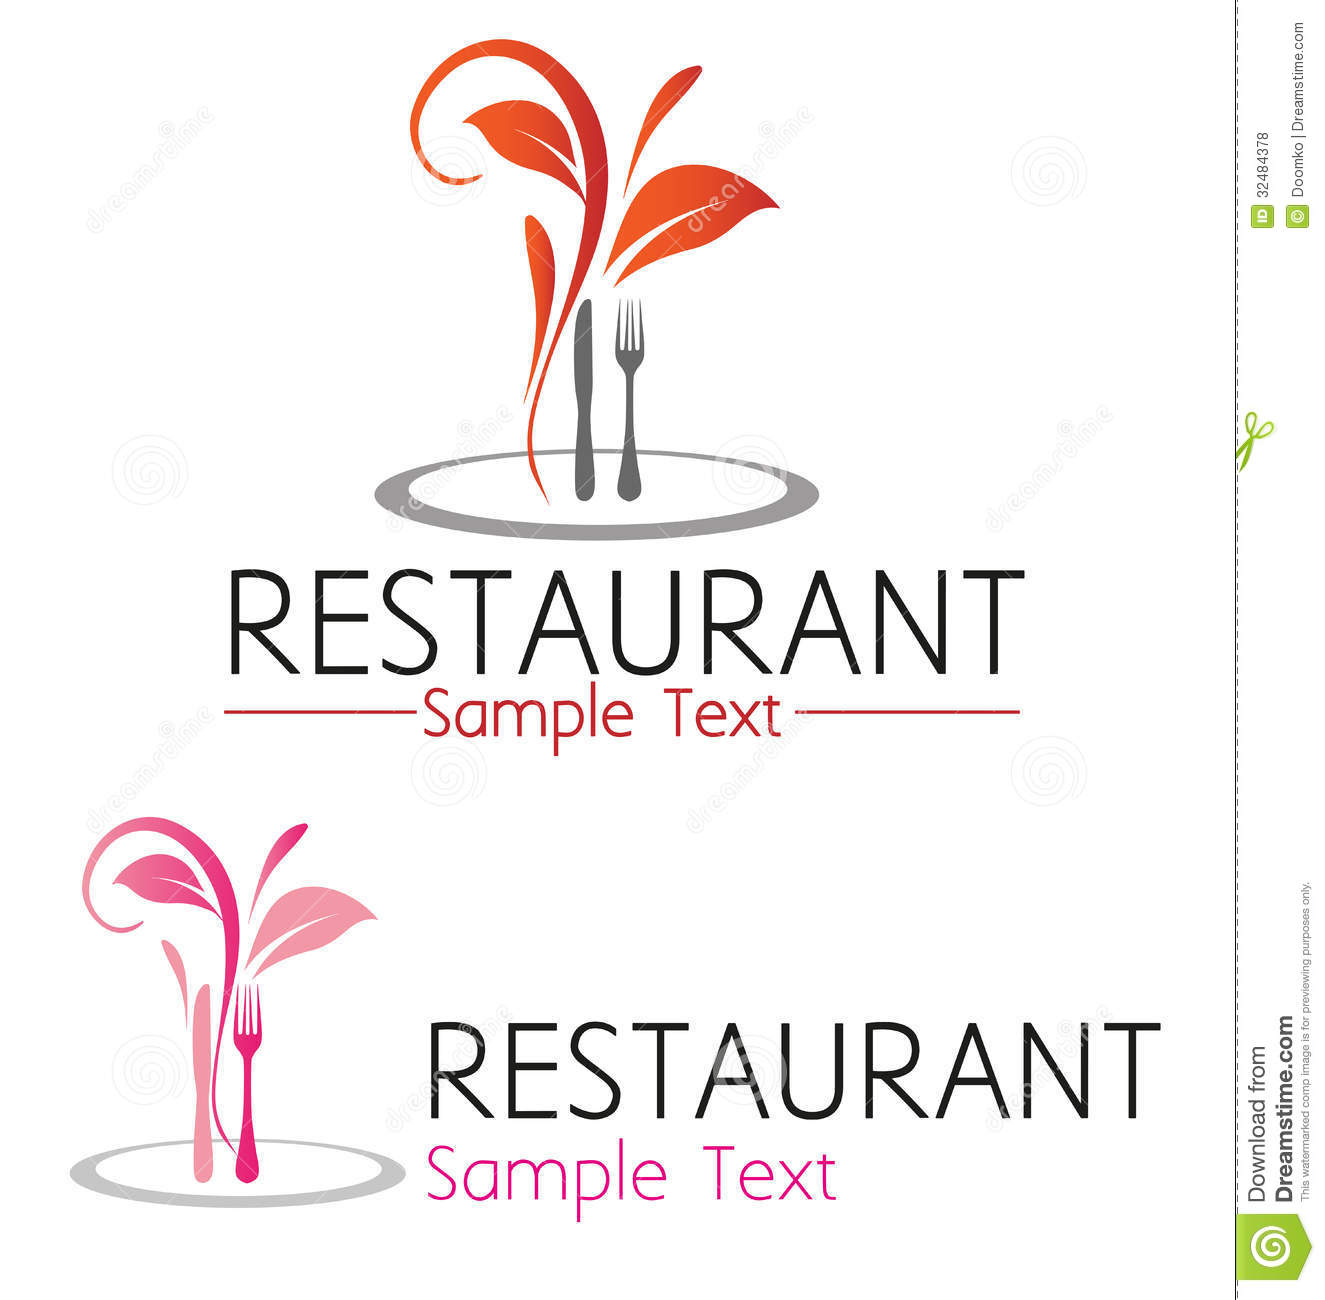 Restaurant symbol stock vector illustration of creative 32484378 restaurant symbol buycottarizona Image collections